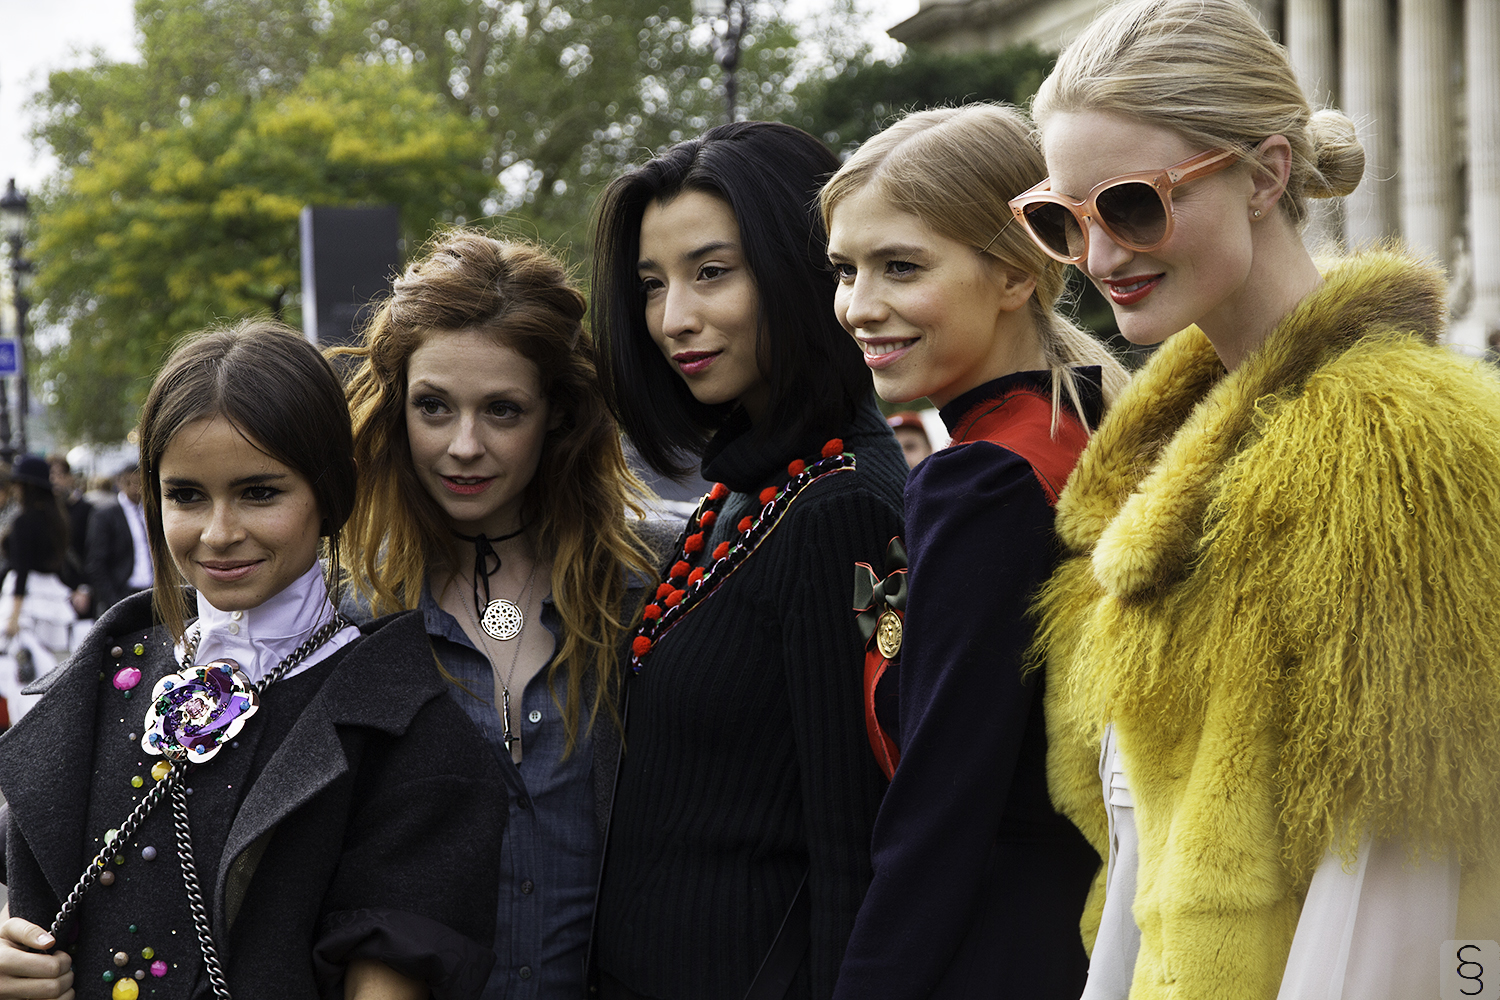 The Snapshots // In Fraganti... The Girl Club: Miroslava Duma, Stephanie LaCava, Lily Kwong, Elena Perminova & Candice Lake